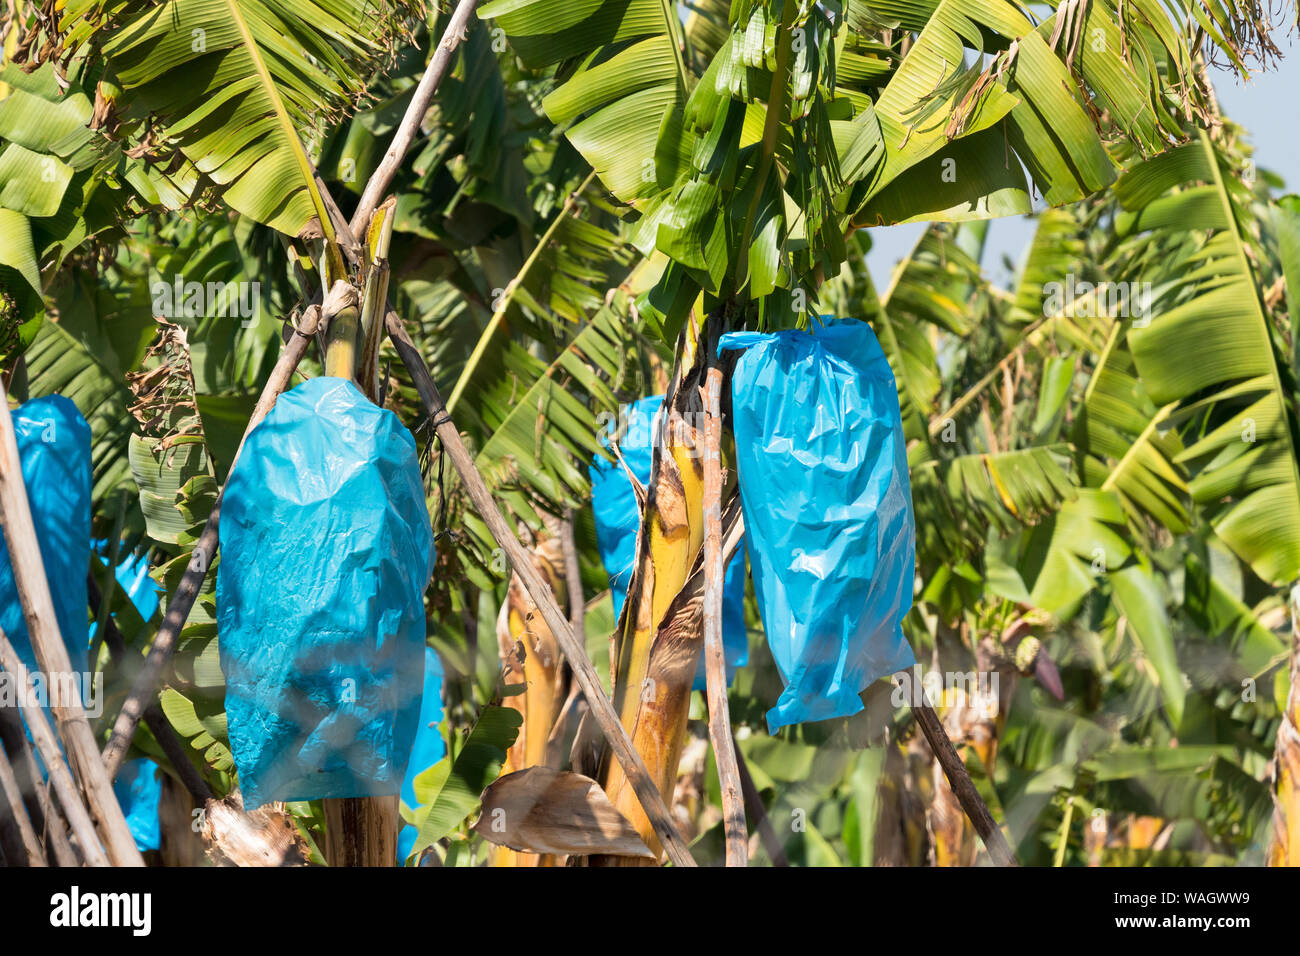 close up of blue plastic bags covering small bunches of bananas on a banana tree or plant on a plantation or farm in Hazyview Mpumalanga, South Africa Stock Photo